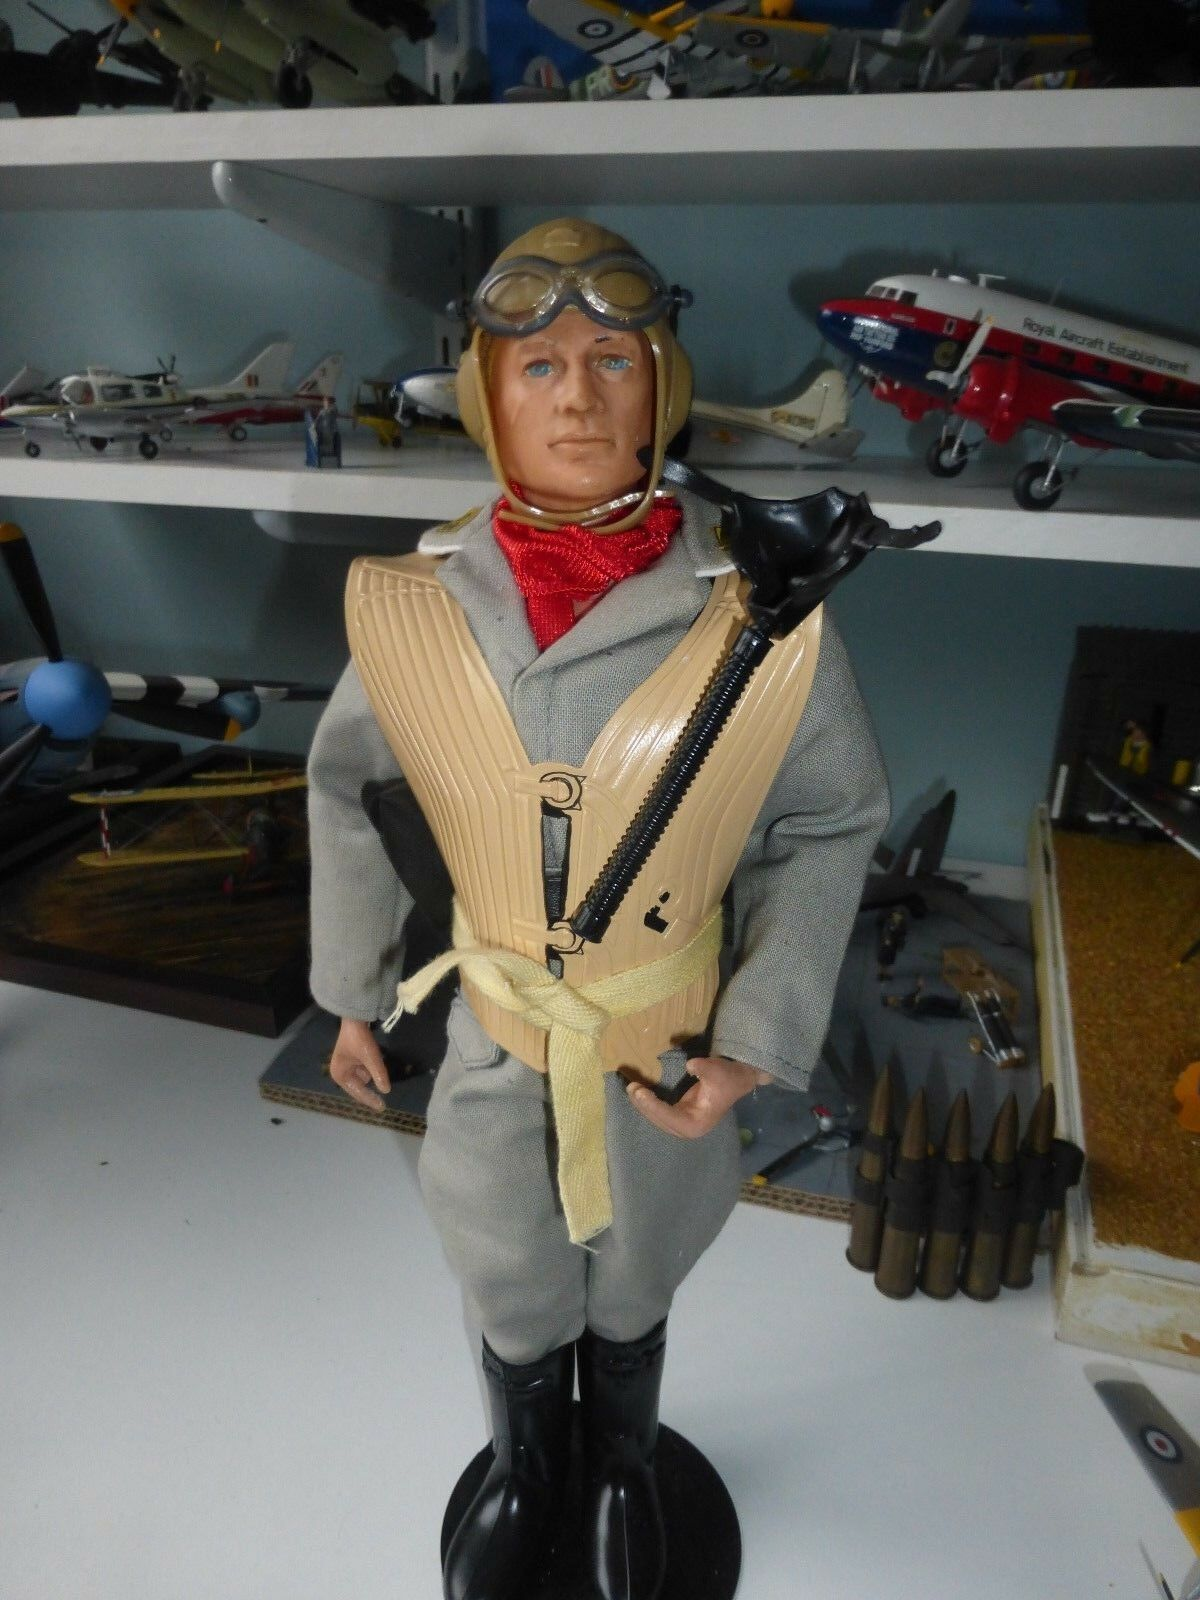 Vintage Action Man with 40th German Luftwaffe pilot uniform with stand.